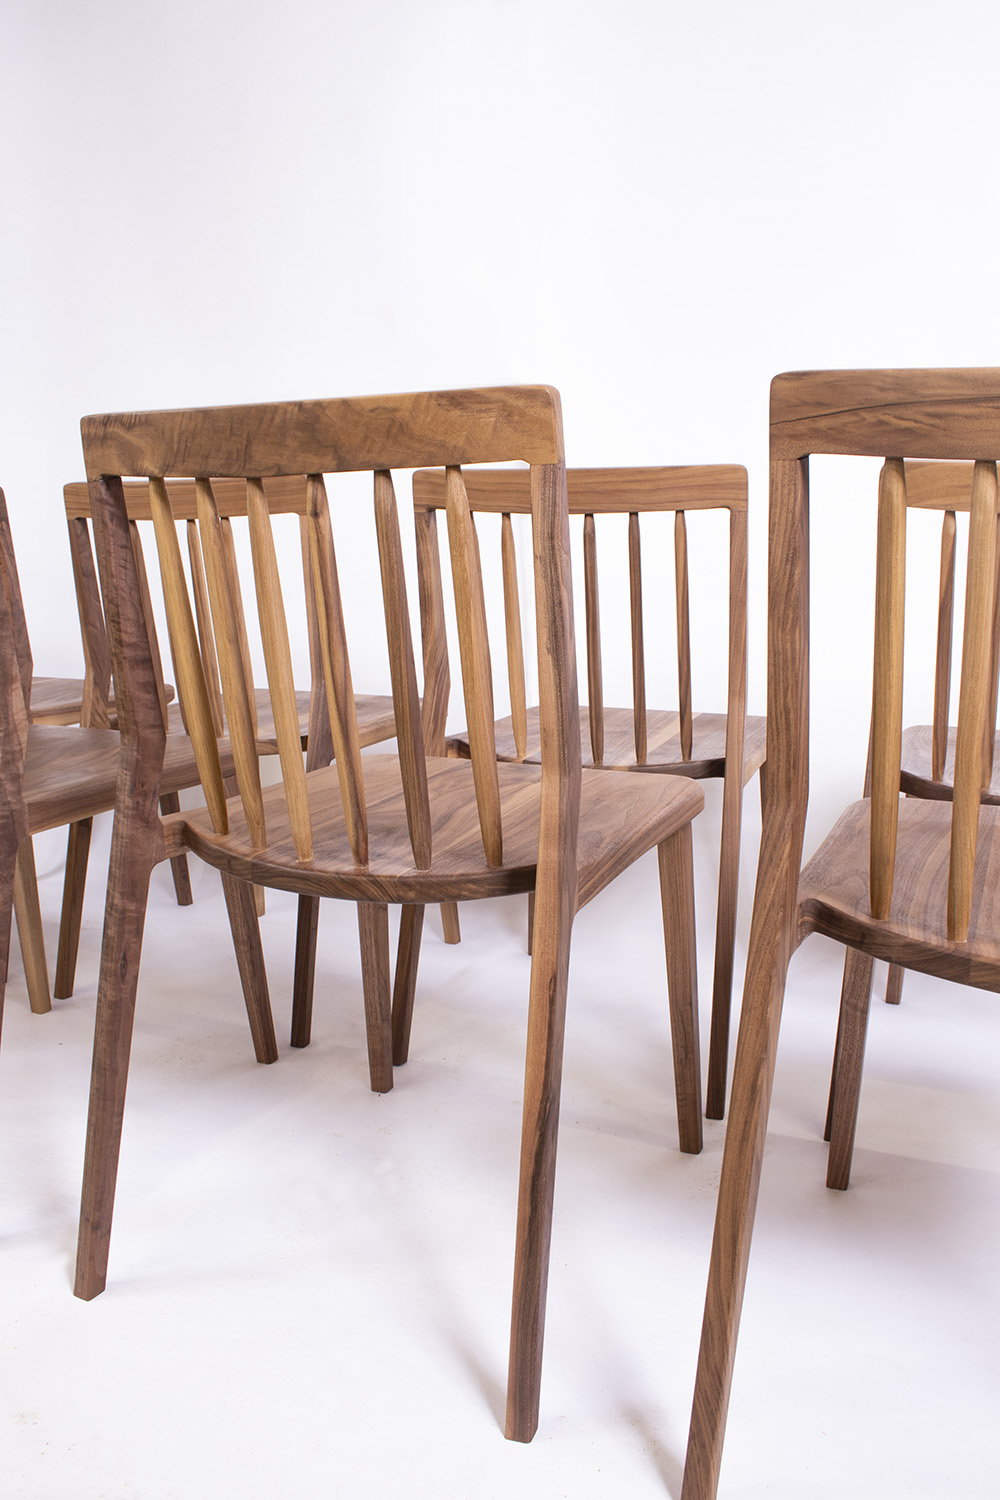 furniture maker bristol, chair maker, dining chairs, walnut chairs